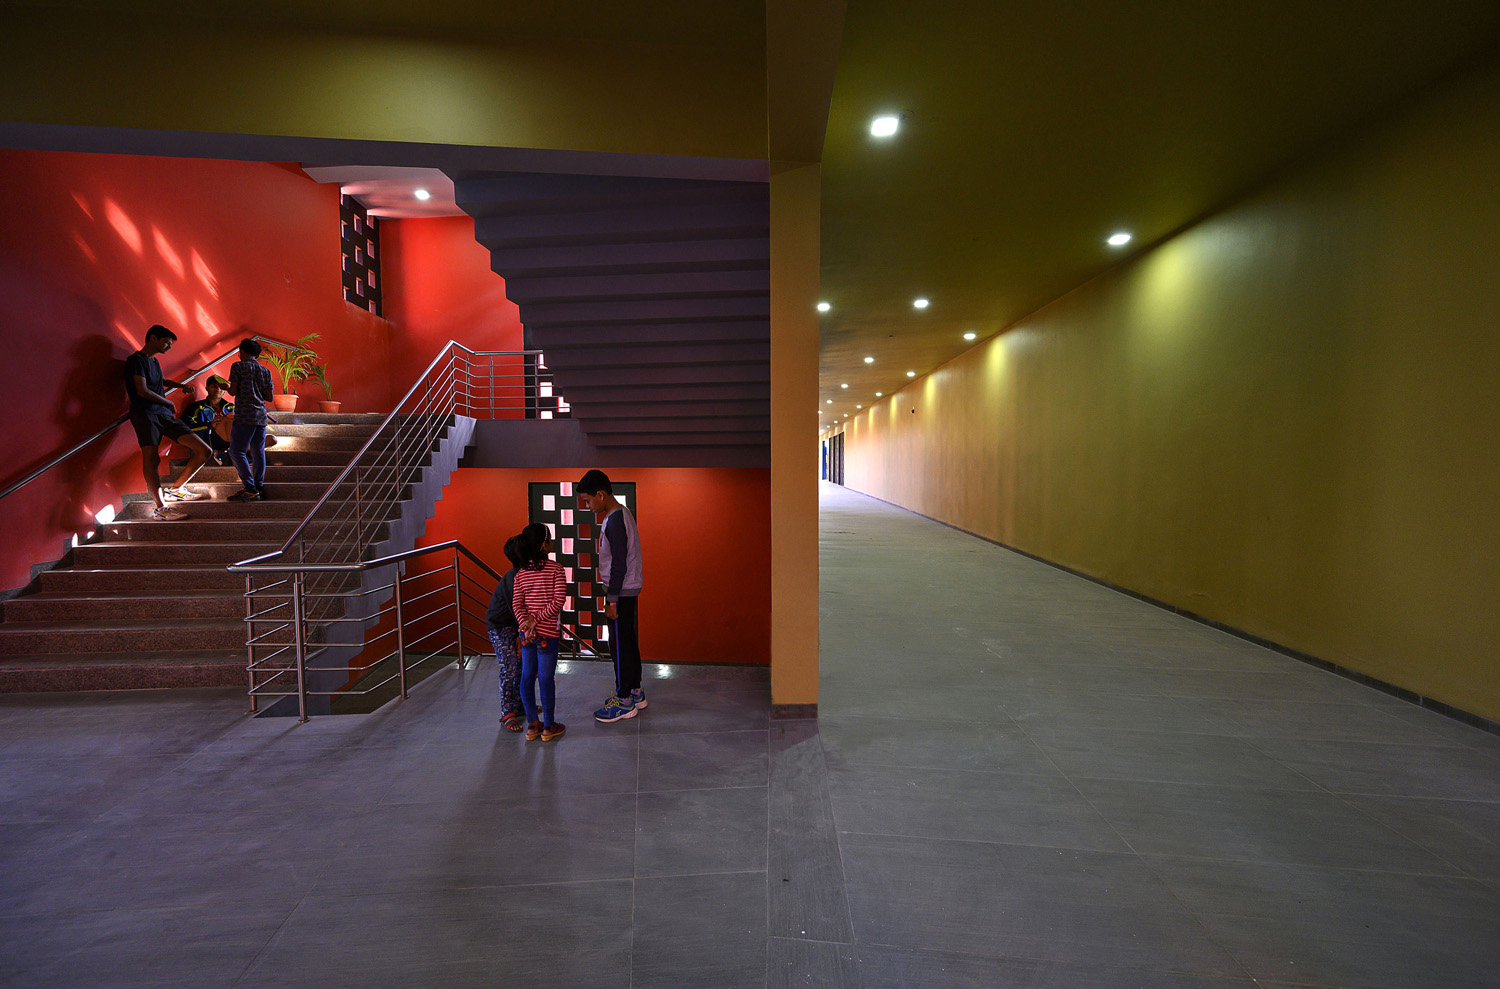 Interior Staircase View Dinesh Mehta